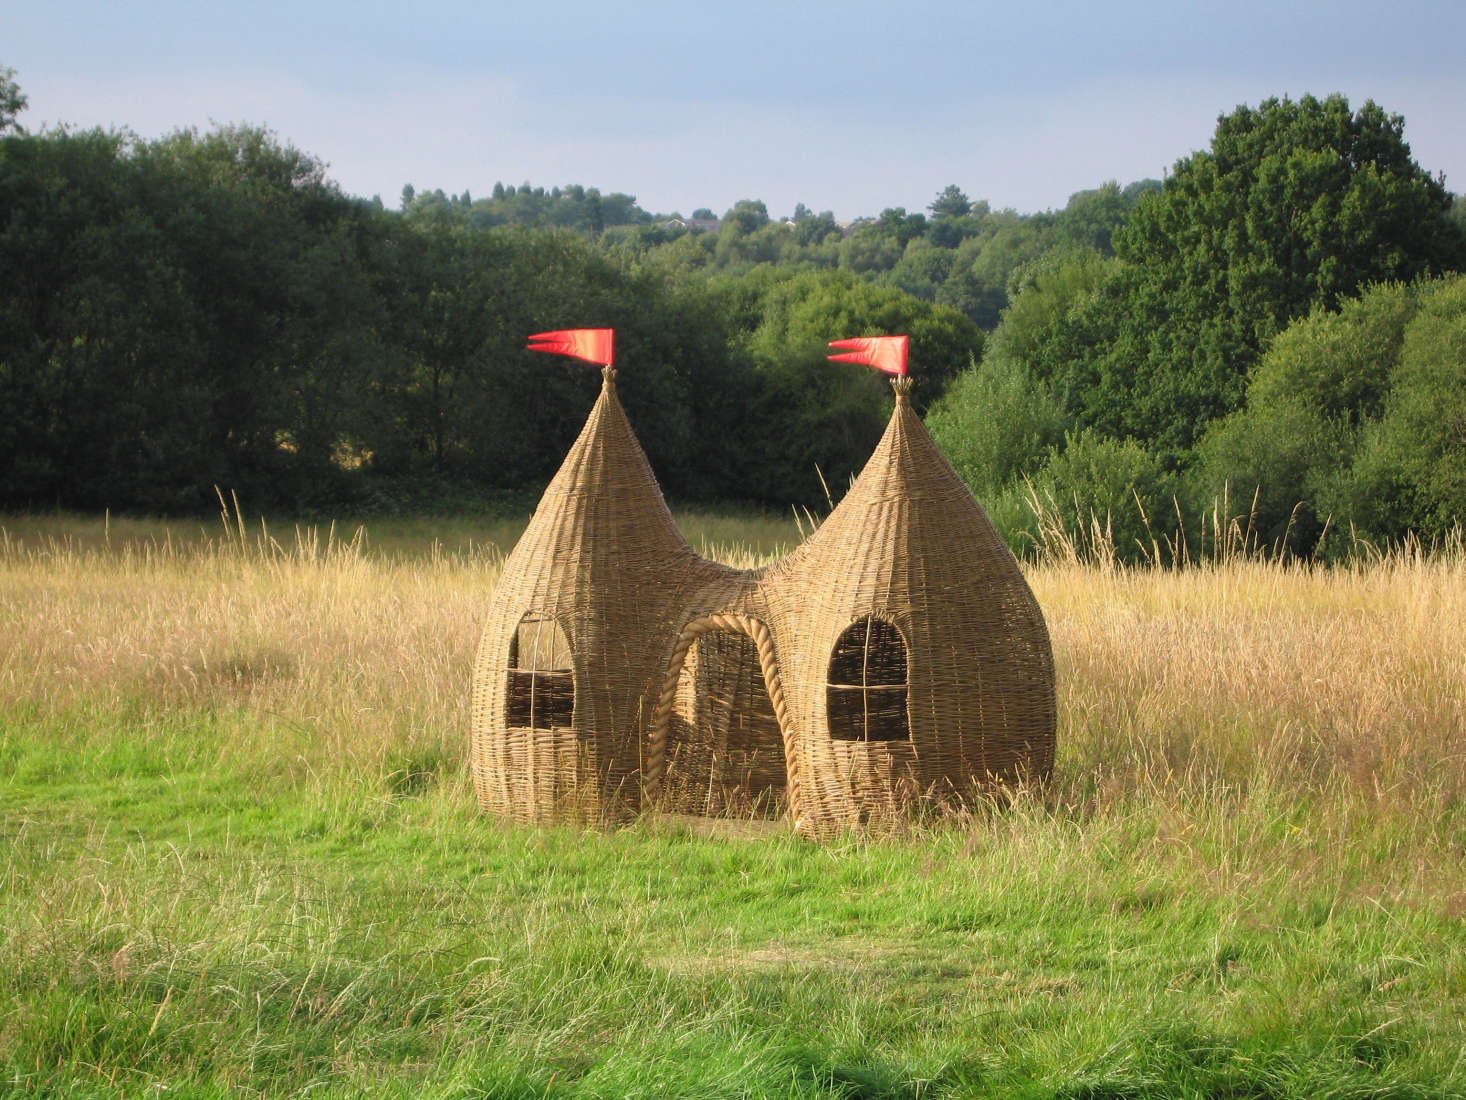 Judith Needham of Surrey, England, is another willow weaver who makes her own designs (including baskets), and came up with her first playhouse for her own daughter. Her largest construction, The Dreaming Spires Willow Playhouse, £